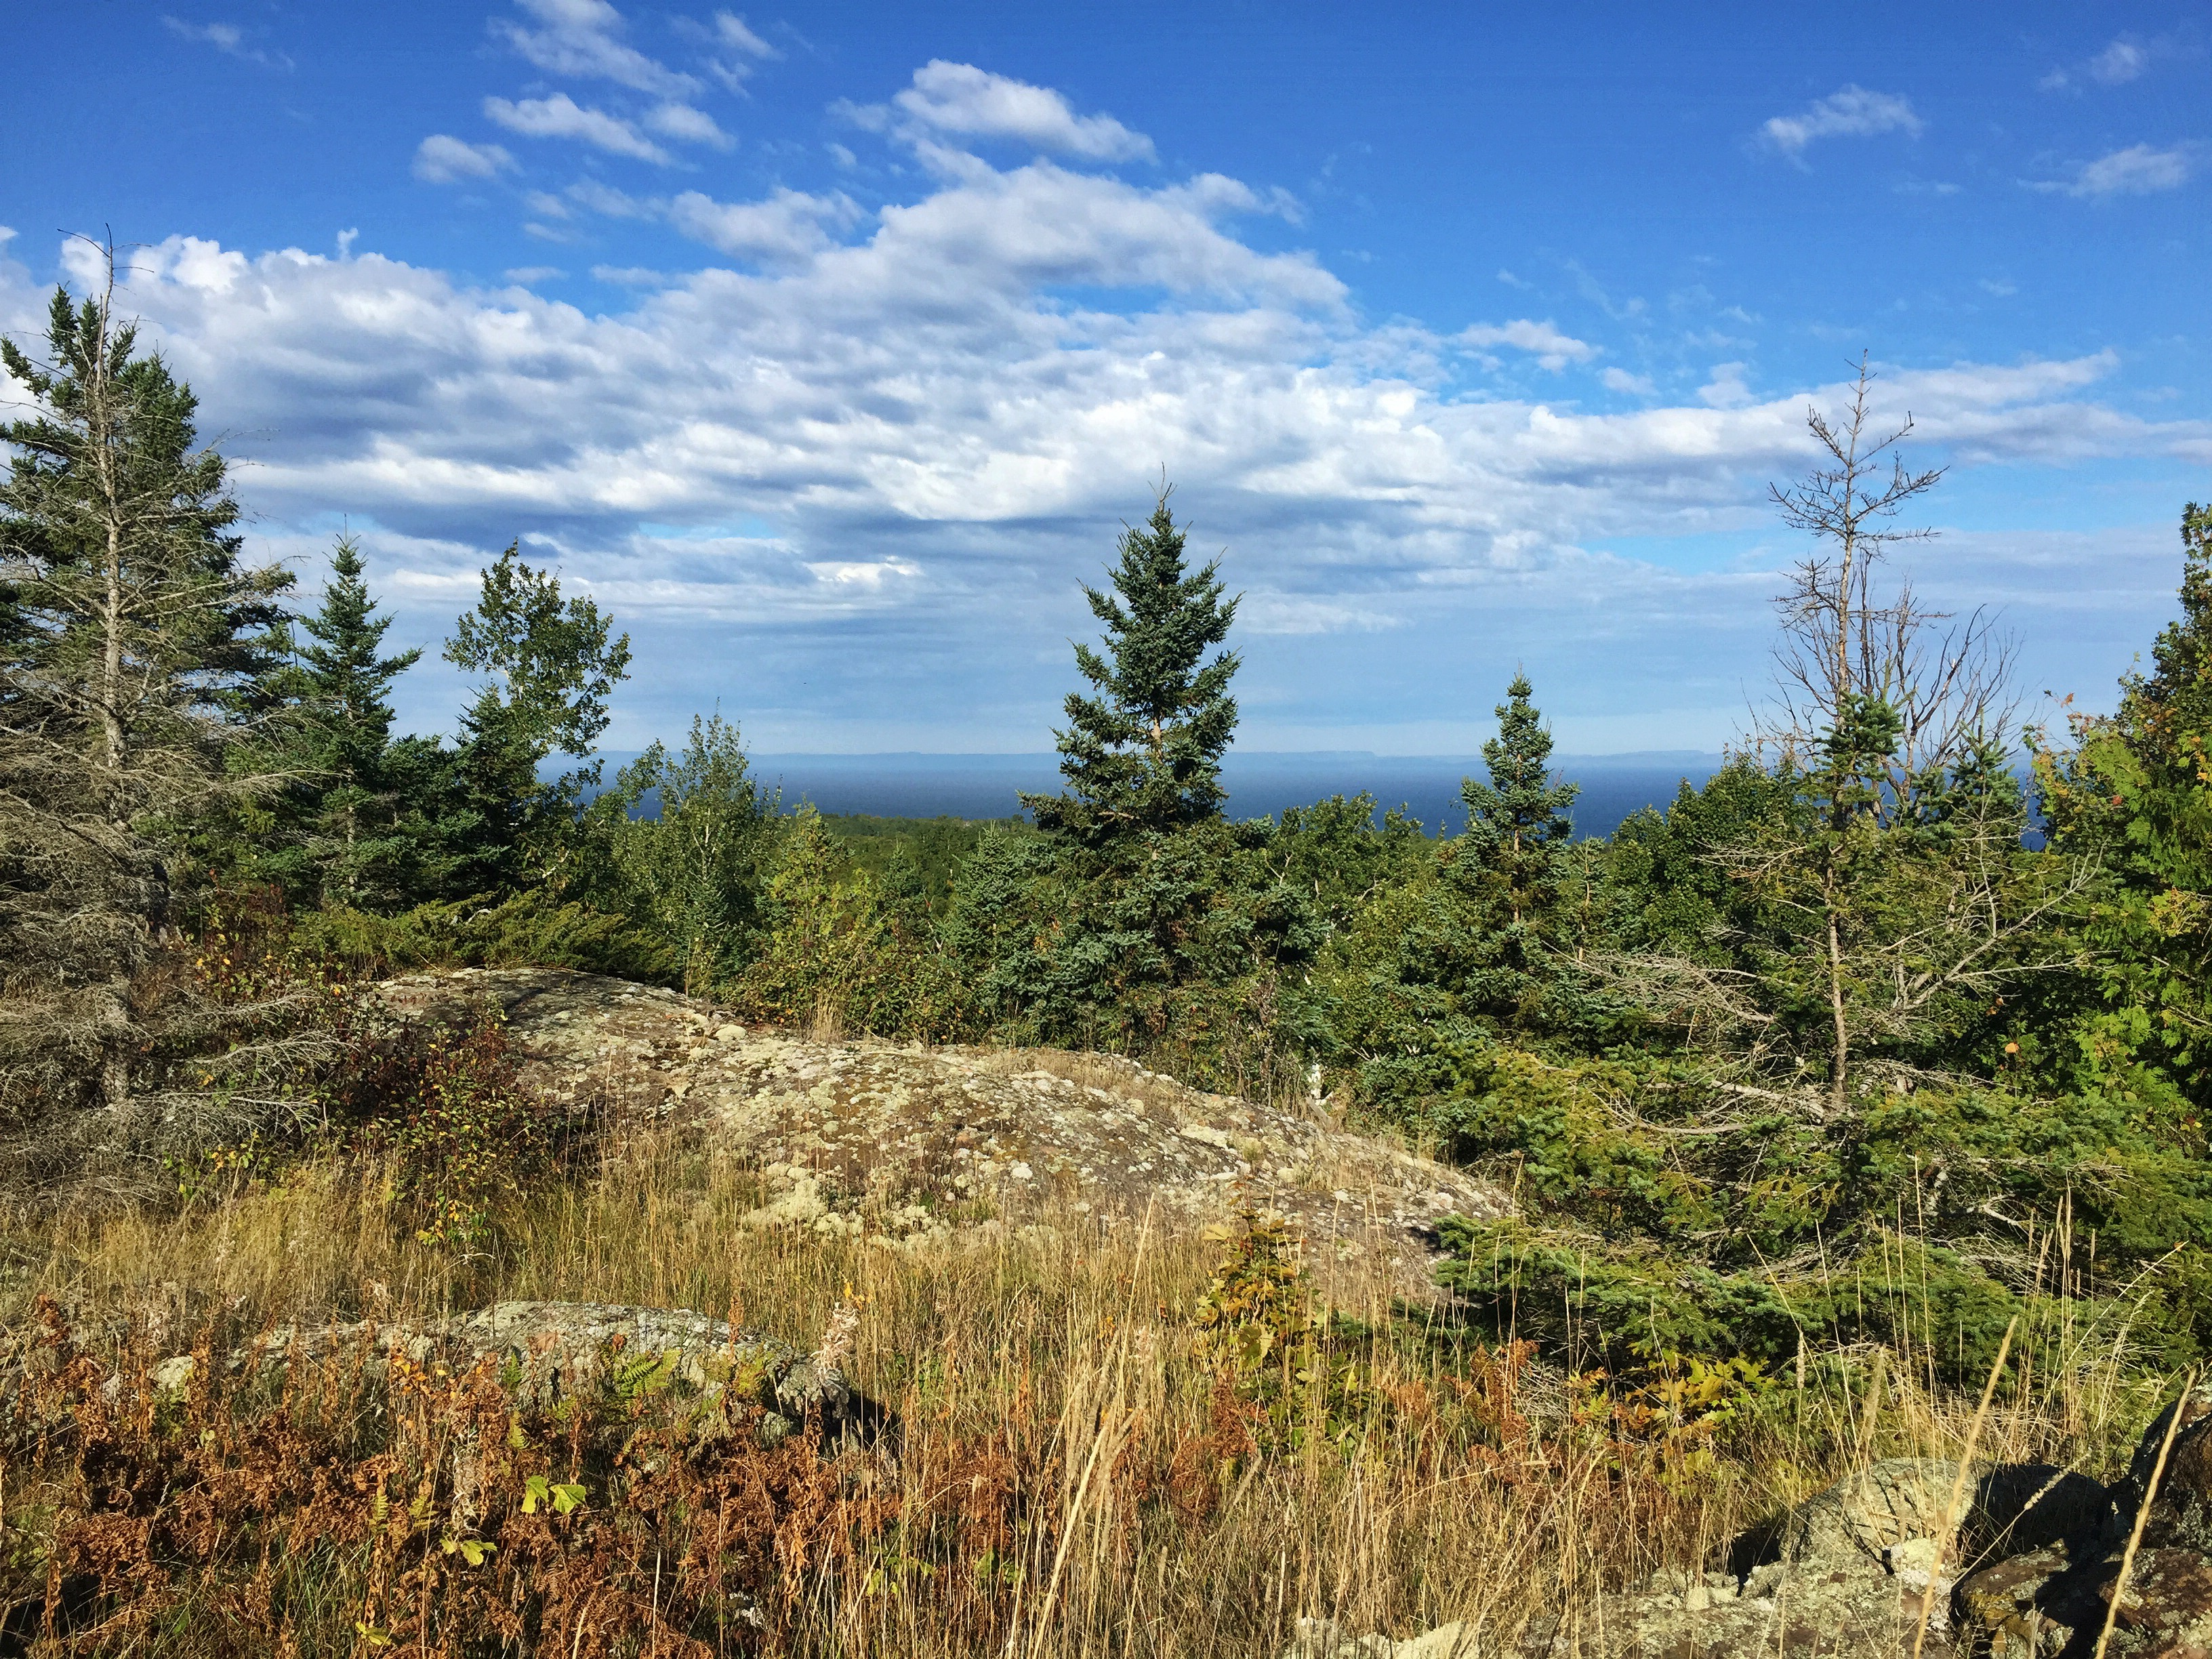 View from a rocky ridge over a mixed evergreen and hardwood forest